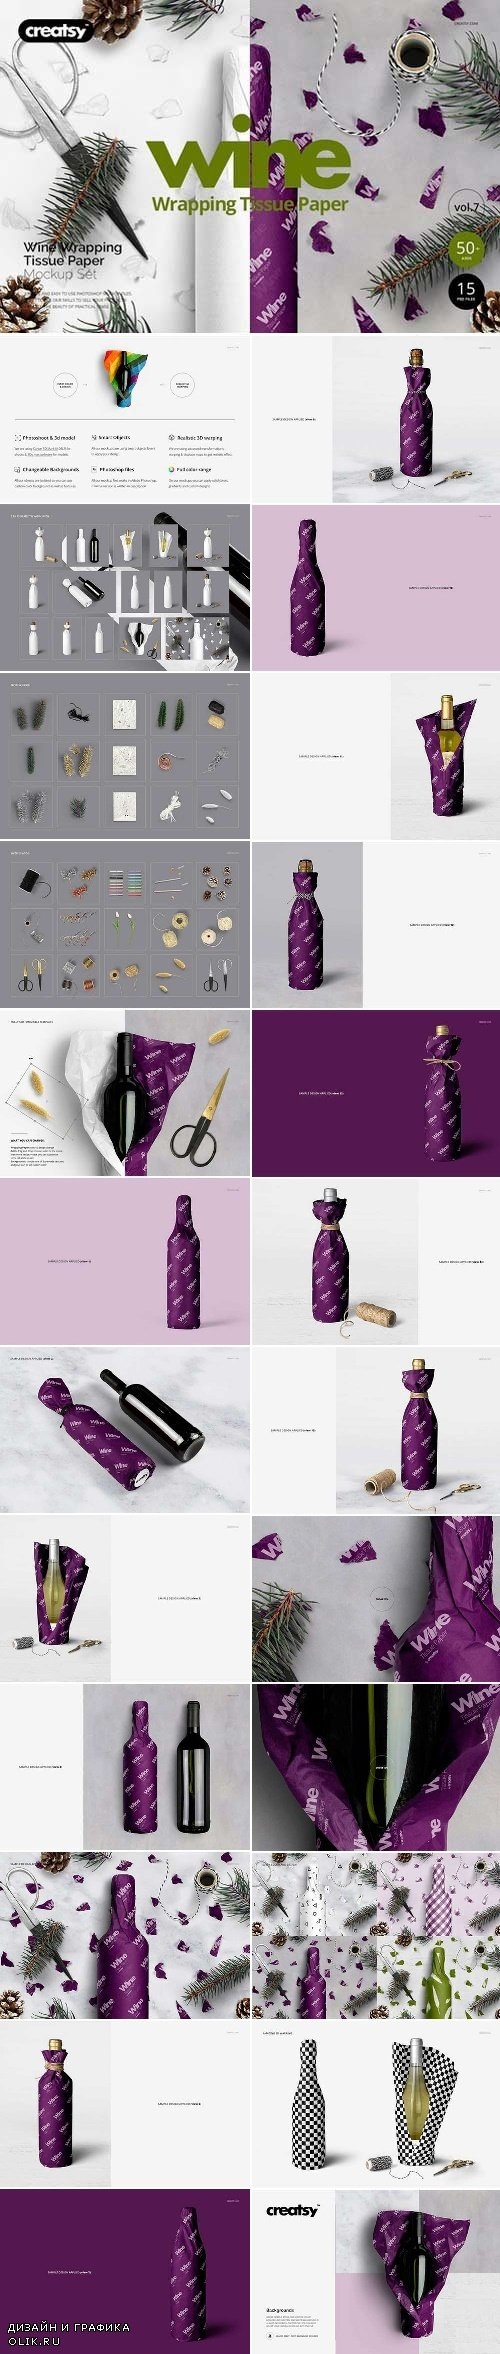 Wrapping Paper Wine Bottle Mockup 2143223